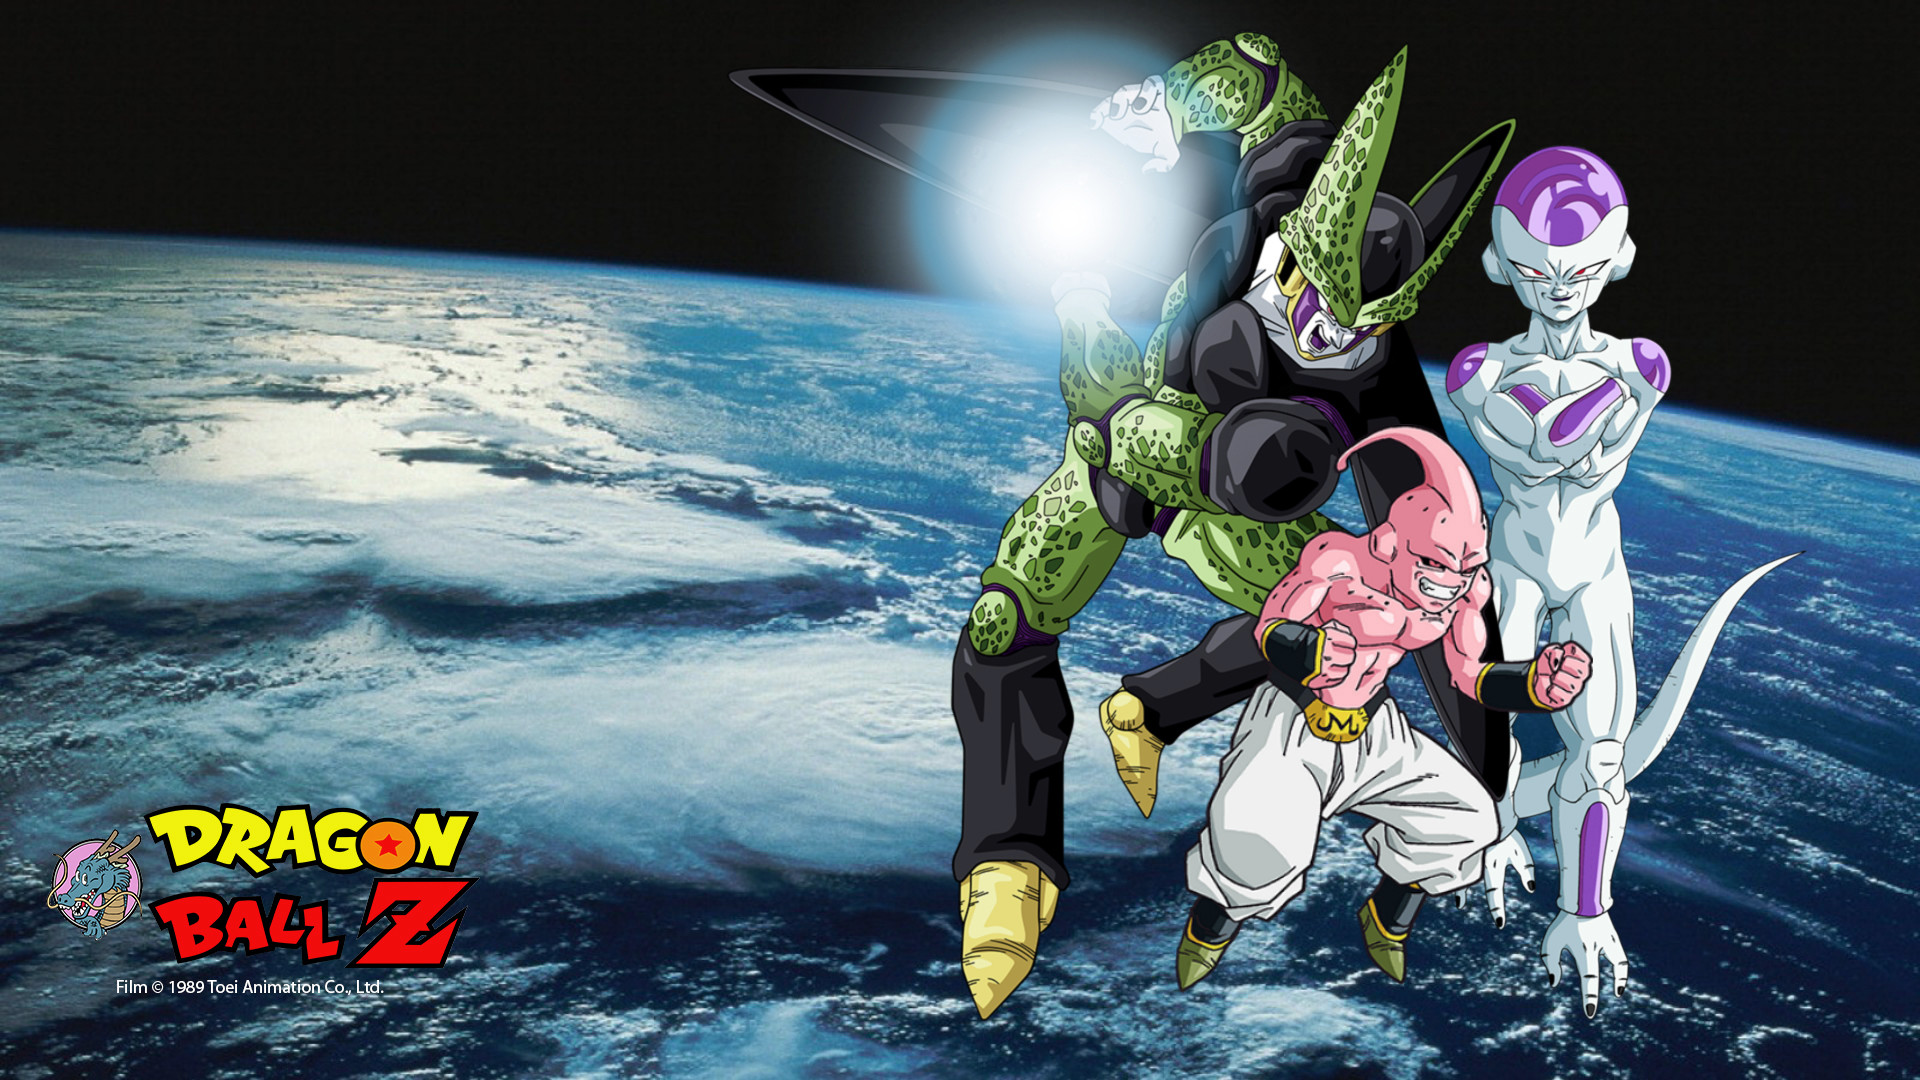 Res: 1920x1080, Frieza, Cell, Buu and Earth HD Wallpaper | Hintergrund |  |  ID:670863 - Wallpaper Abyss